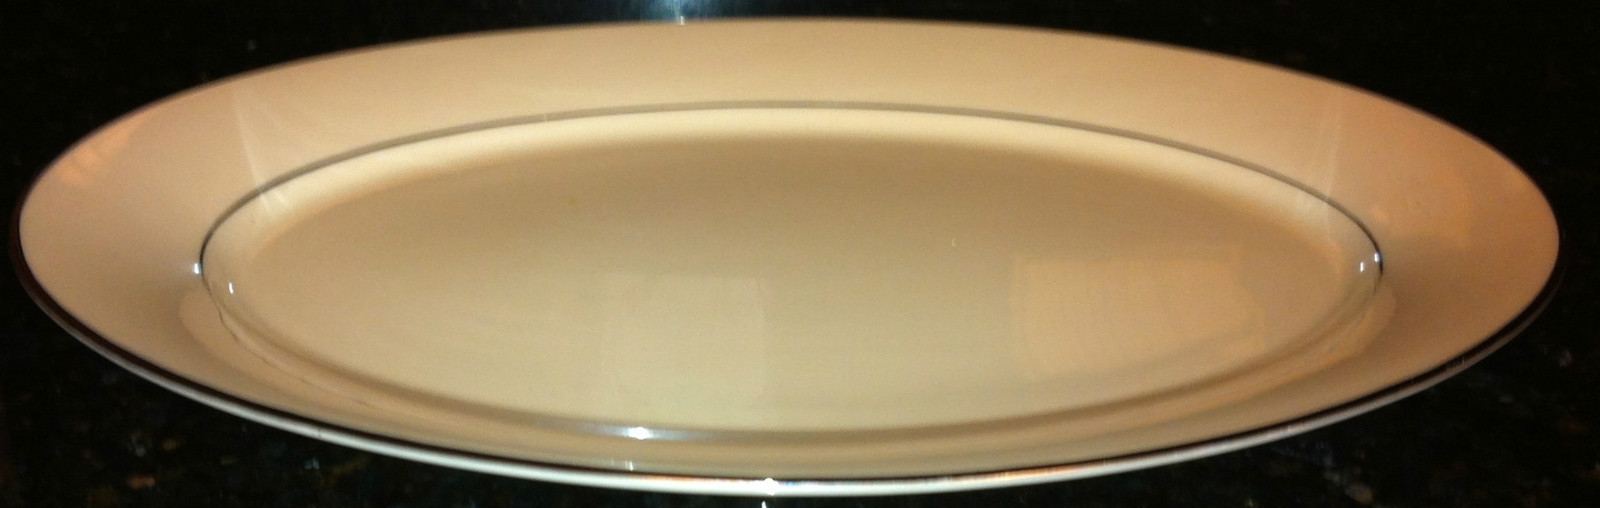 "13.5"" Platter in Maywood Pattern by Lenox Cosmopolitan Collection NWT"